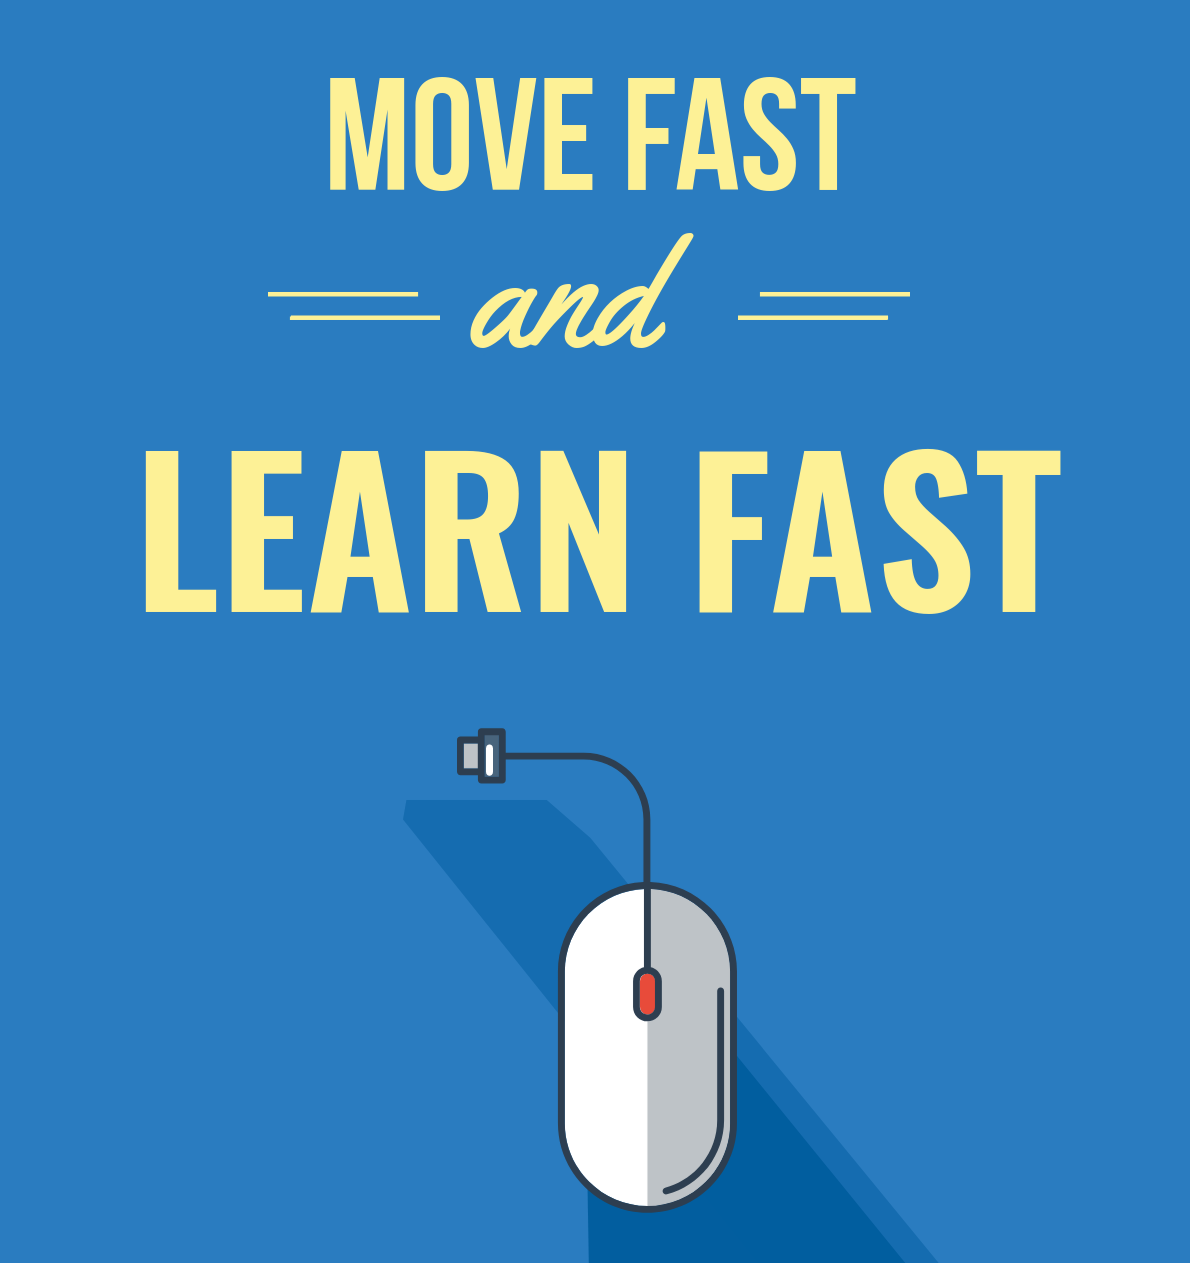 Move Fast and Break Things is Not Dead - The Startup - Medium